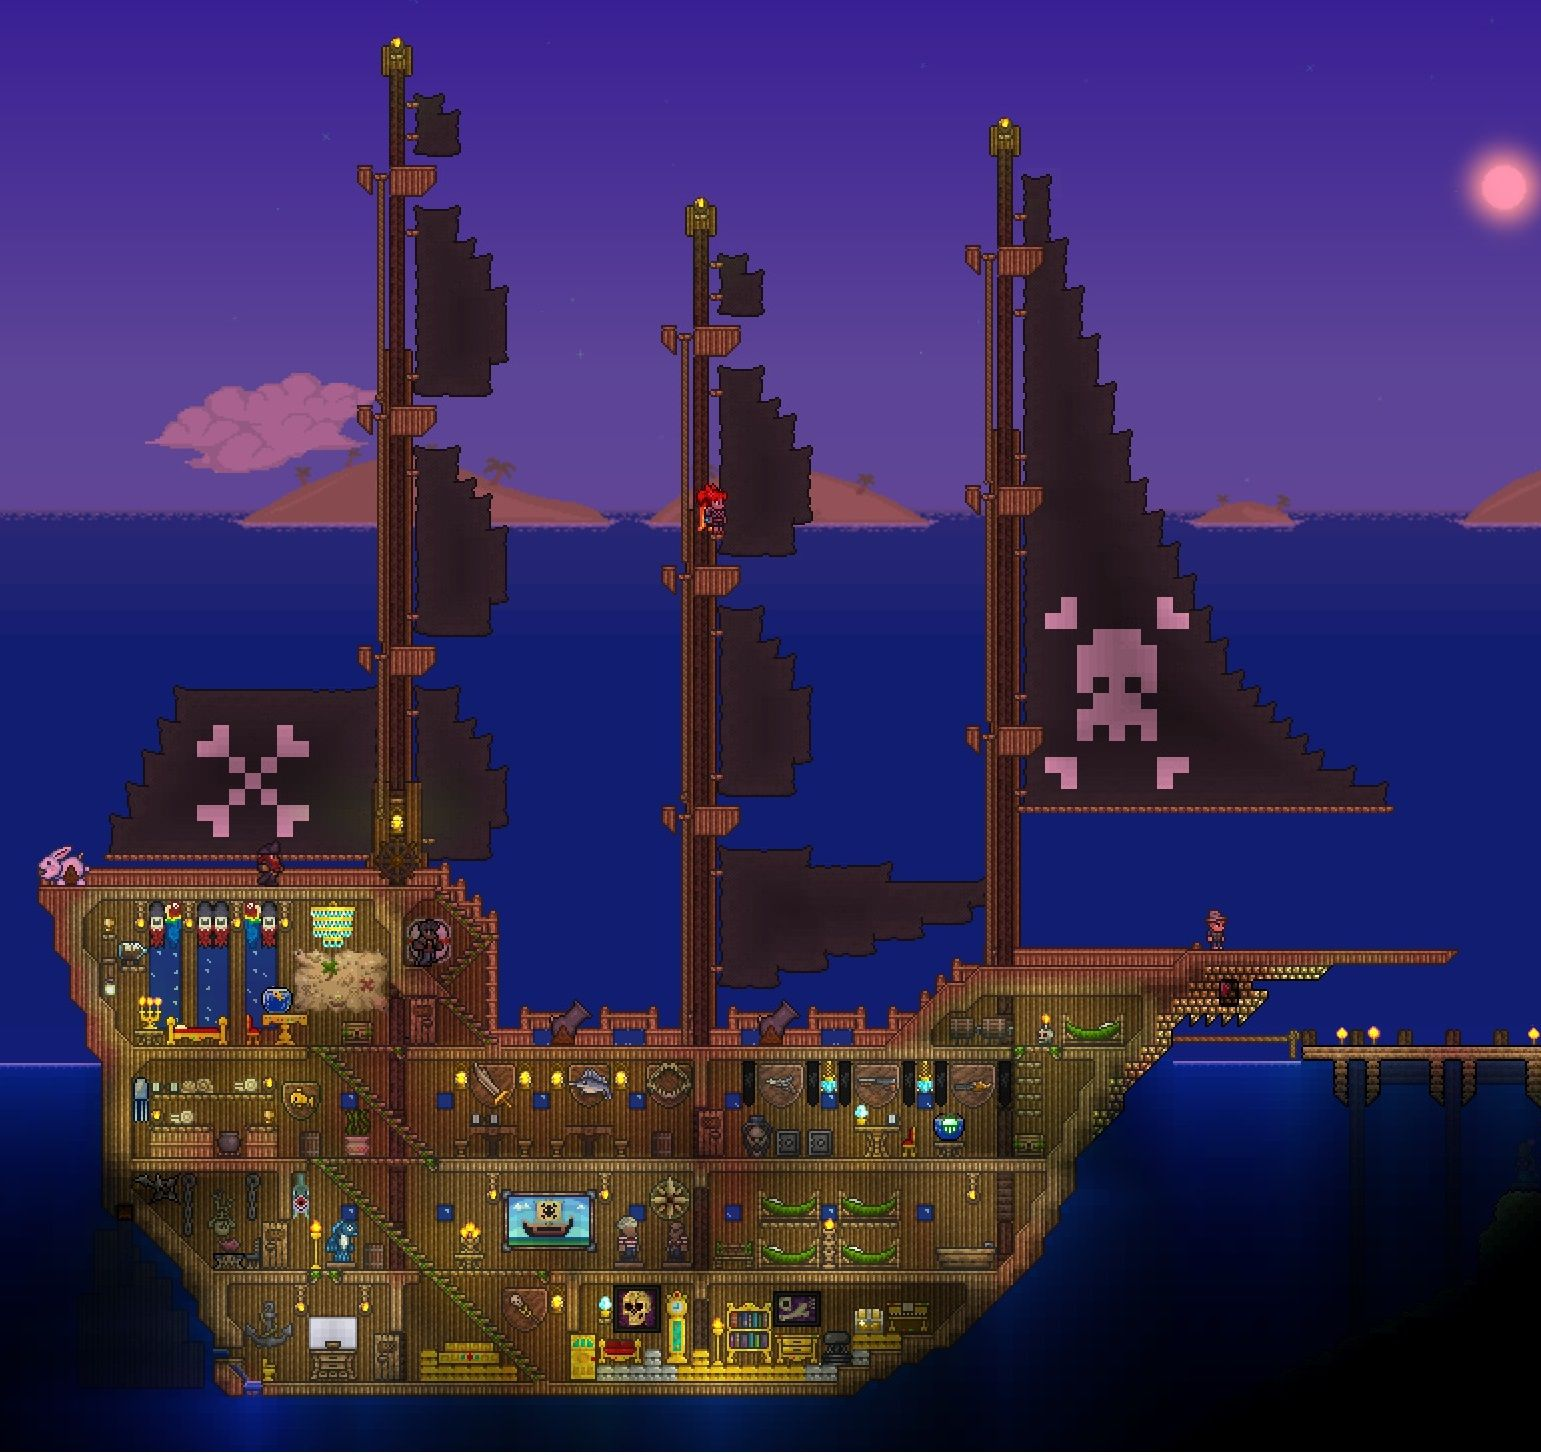 Pin By D G On Terraria: Image Result For Terraria Ship House